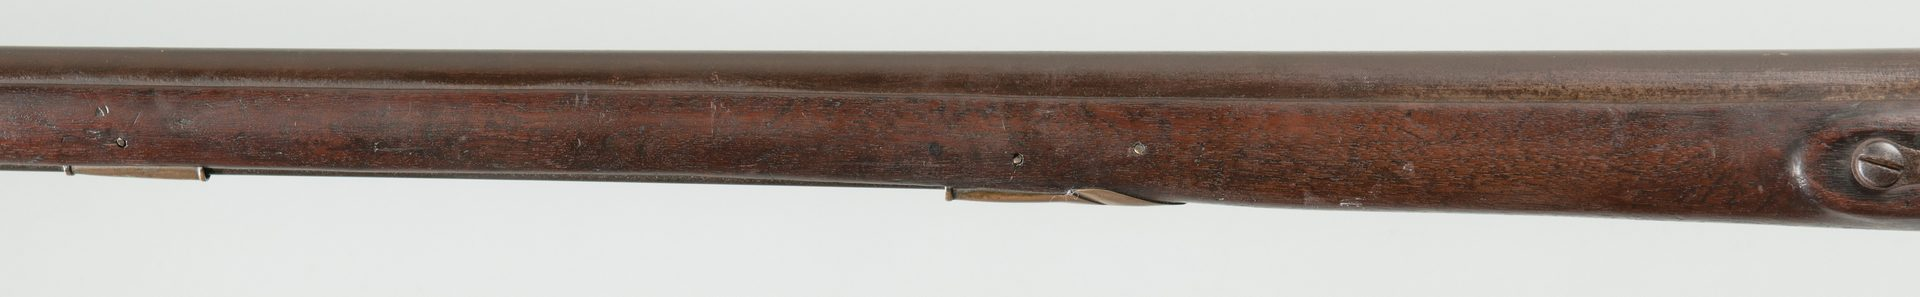 Lot 241: Whitney model 1816 contract, conversion rifle